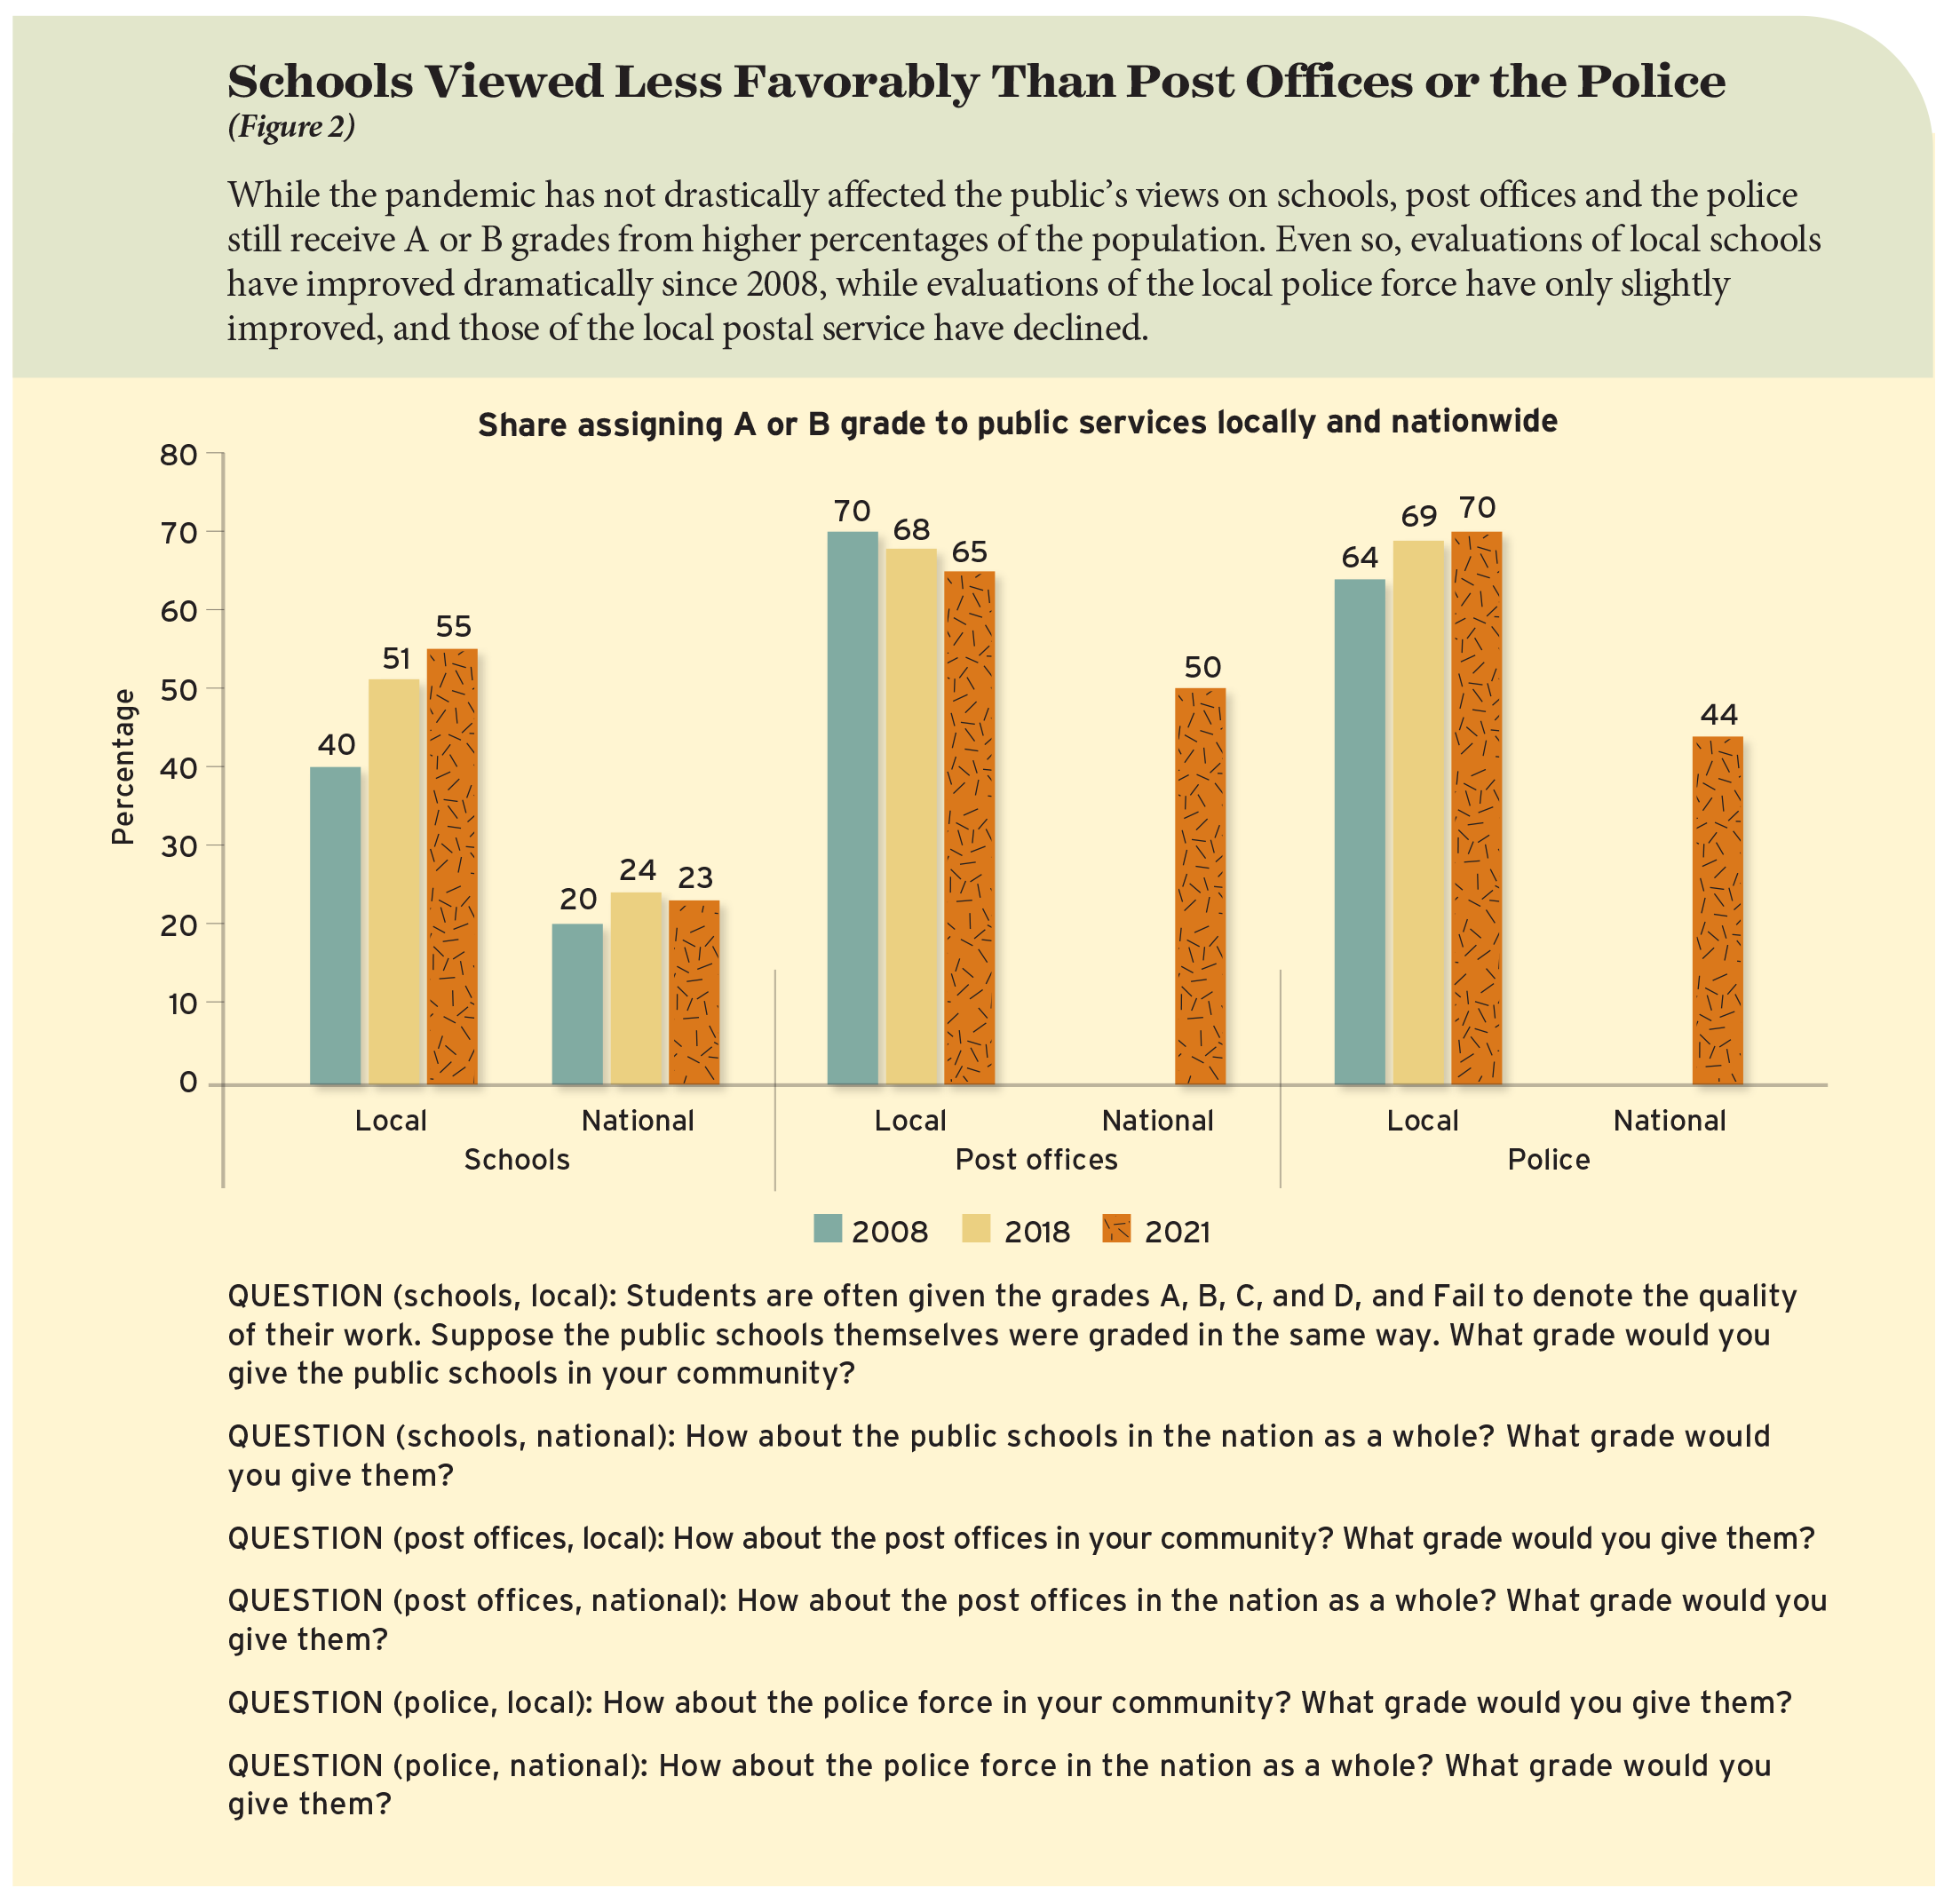 Schools Viewed Less Favorably Than Post Offices or the Police (Figure 2)